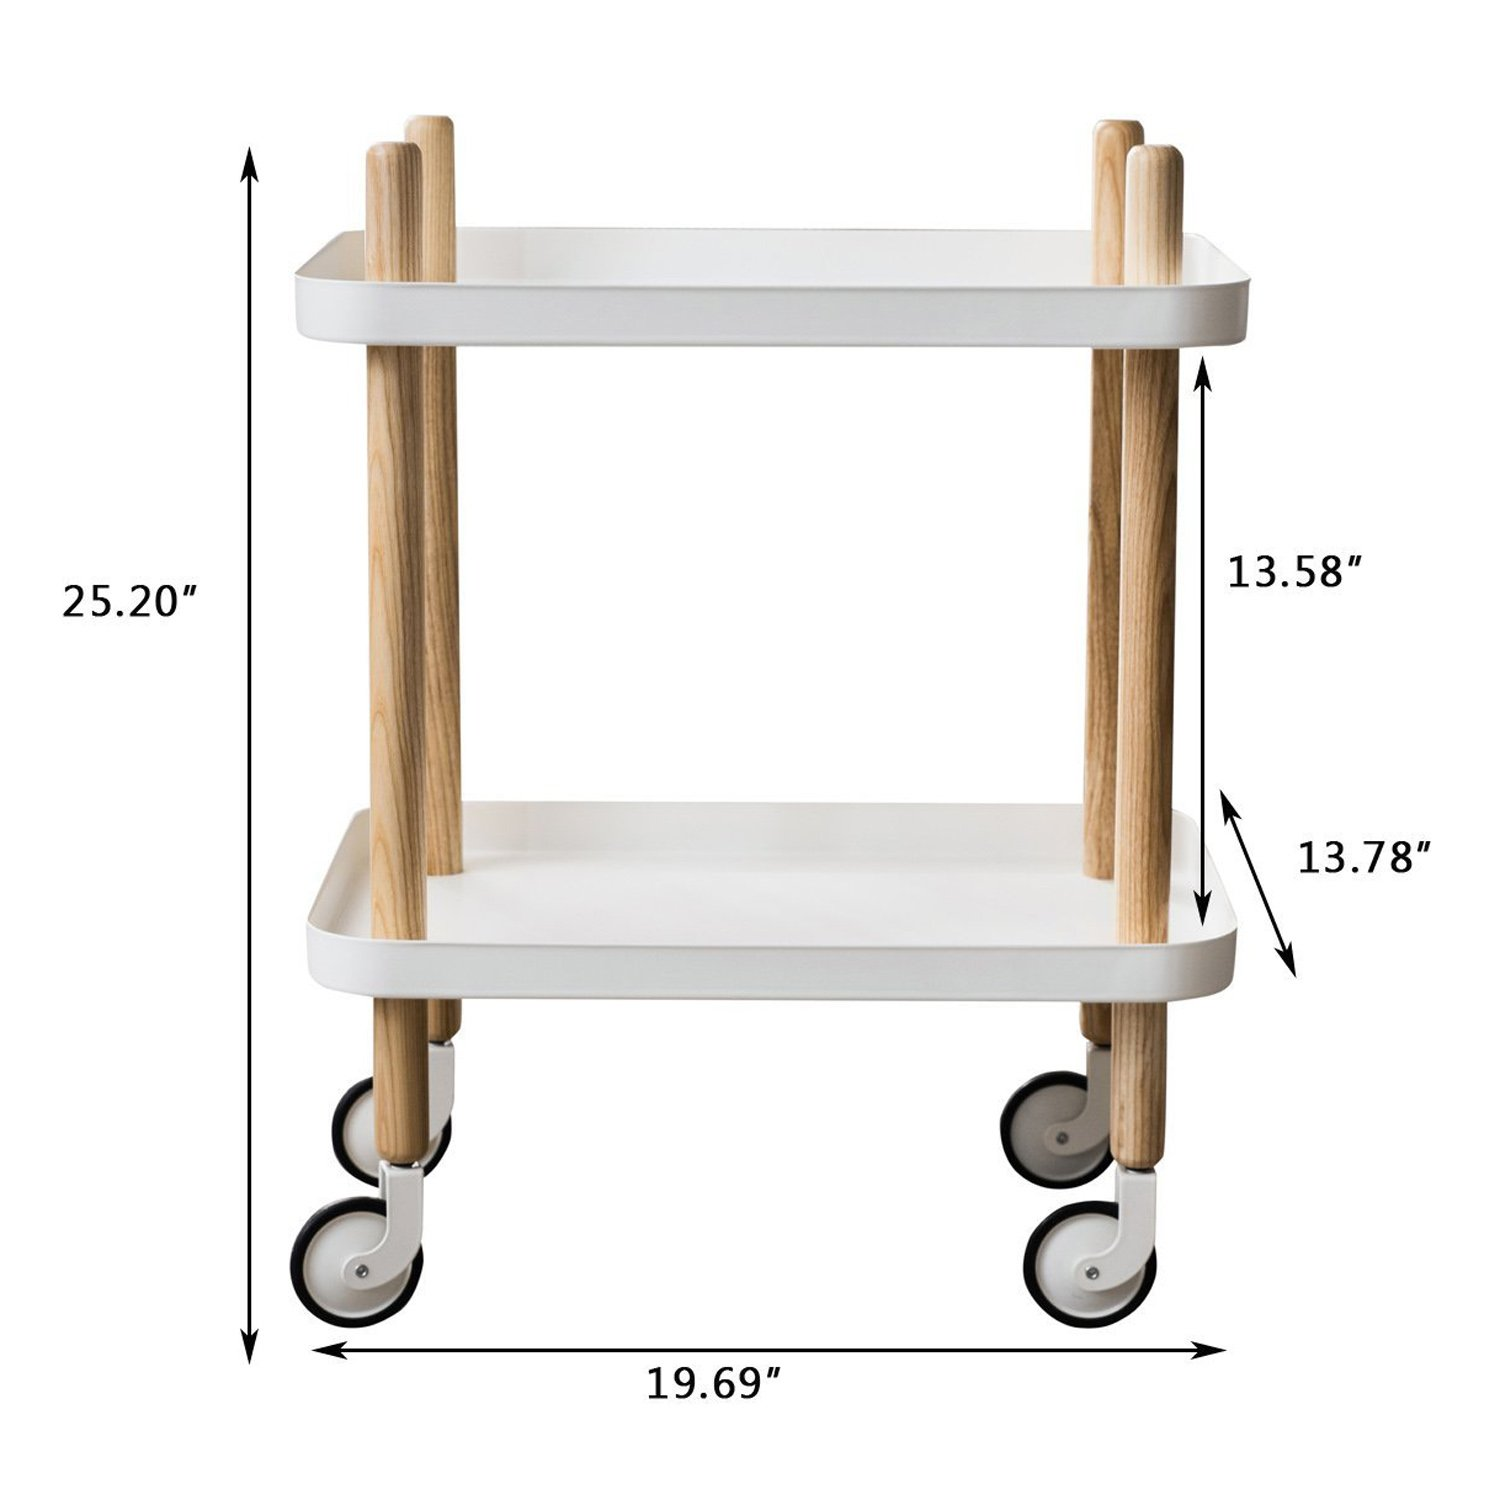 Sofa Side Table with wheels, Metal Tray End Table Living Room Bedroom, 2-Tier Nightstand Utility Rolling Cart, White by Clothink (Image #2)